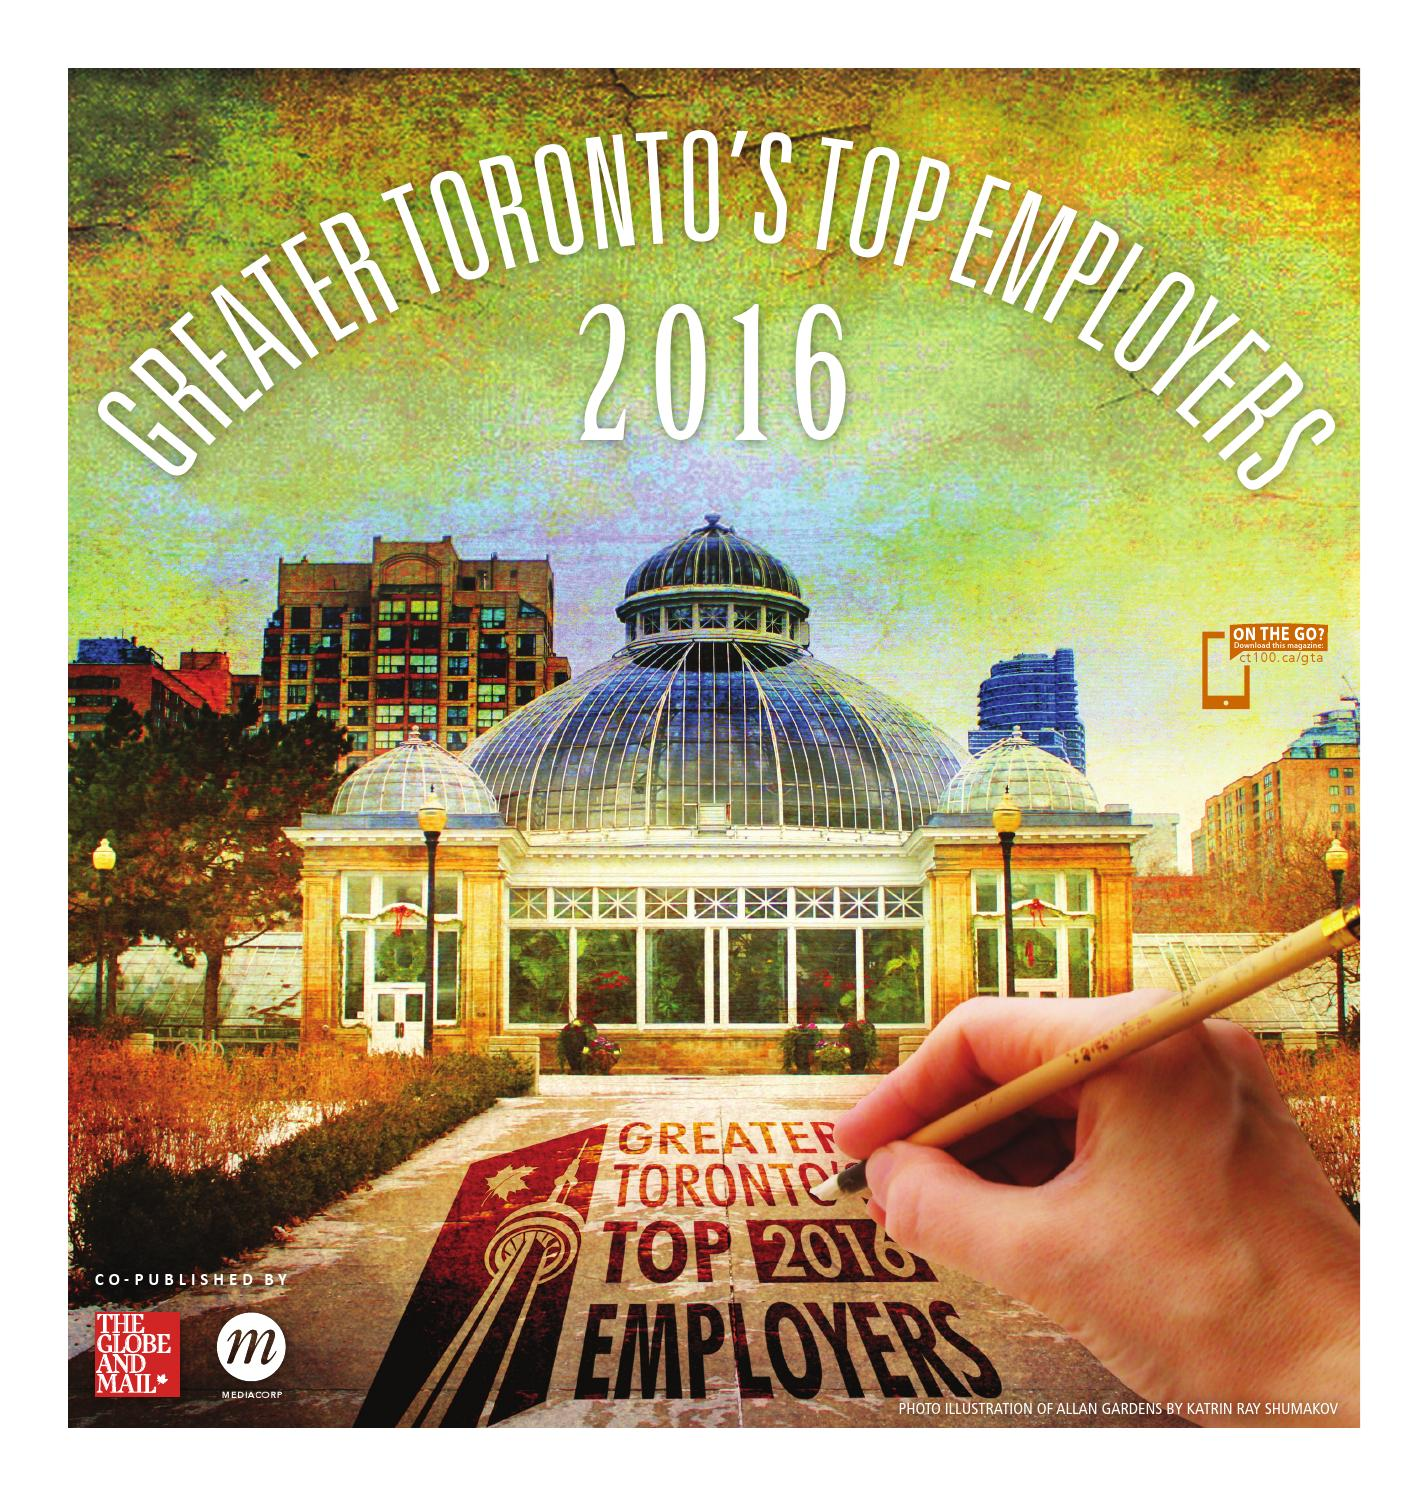 Greater Toronto Top Employers (2016) by Canada's Top 100 Employers